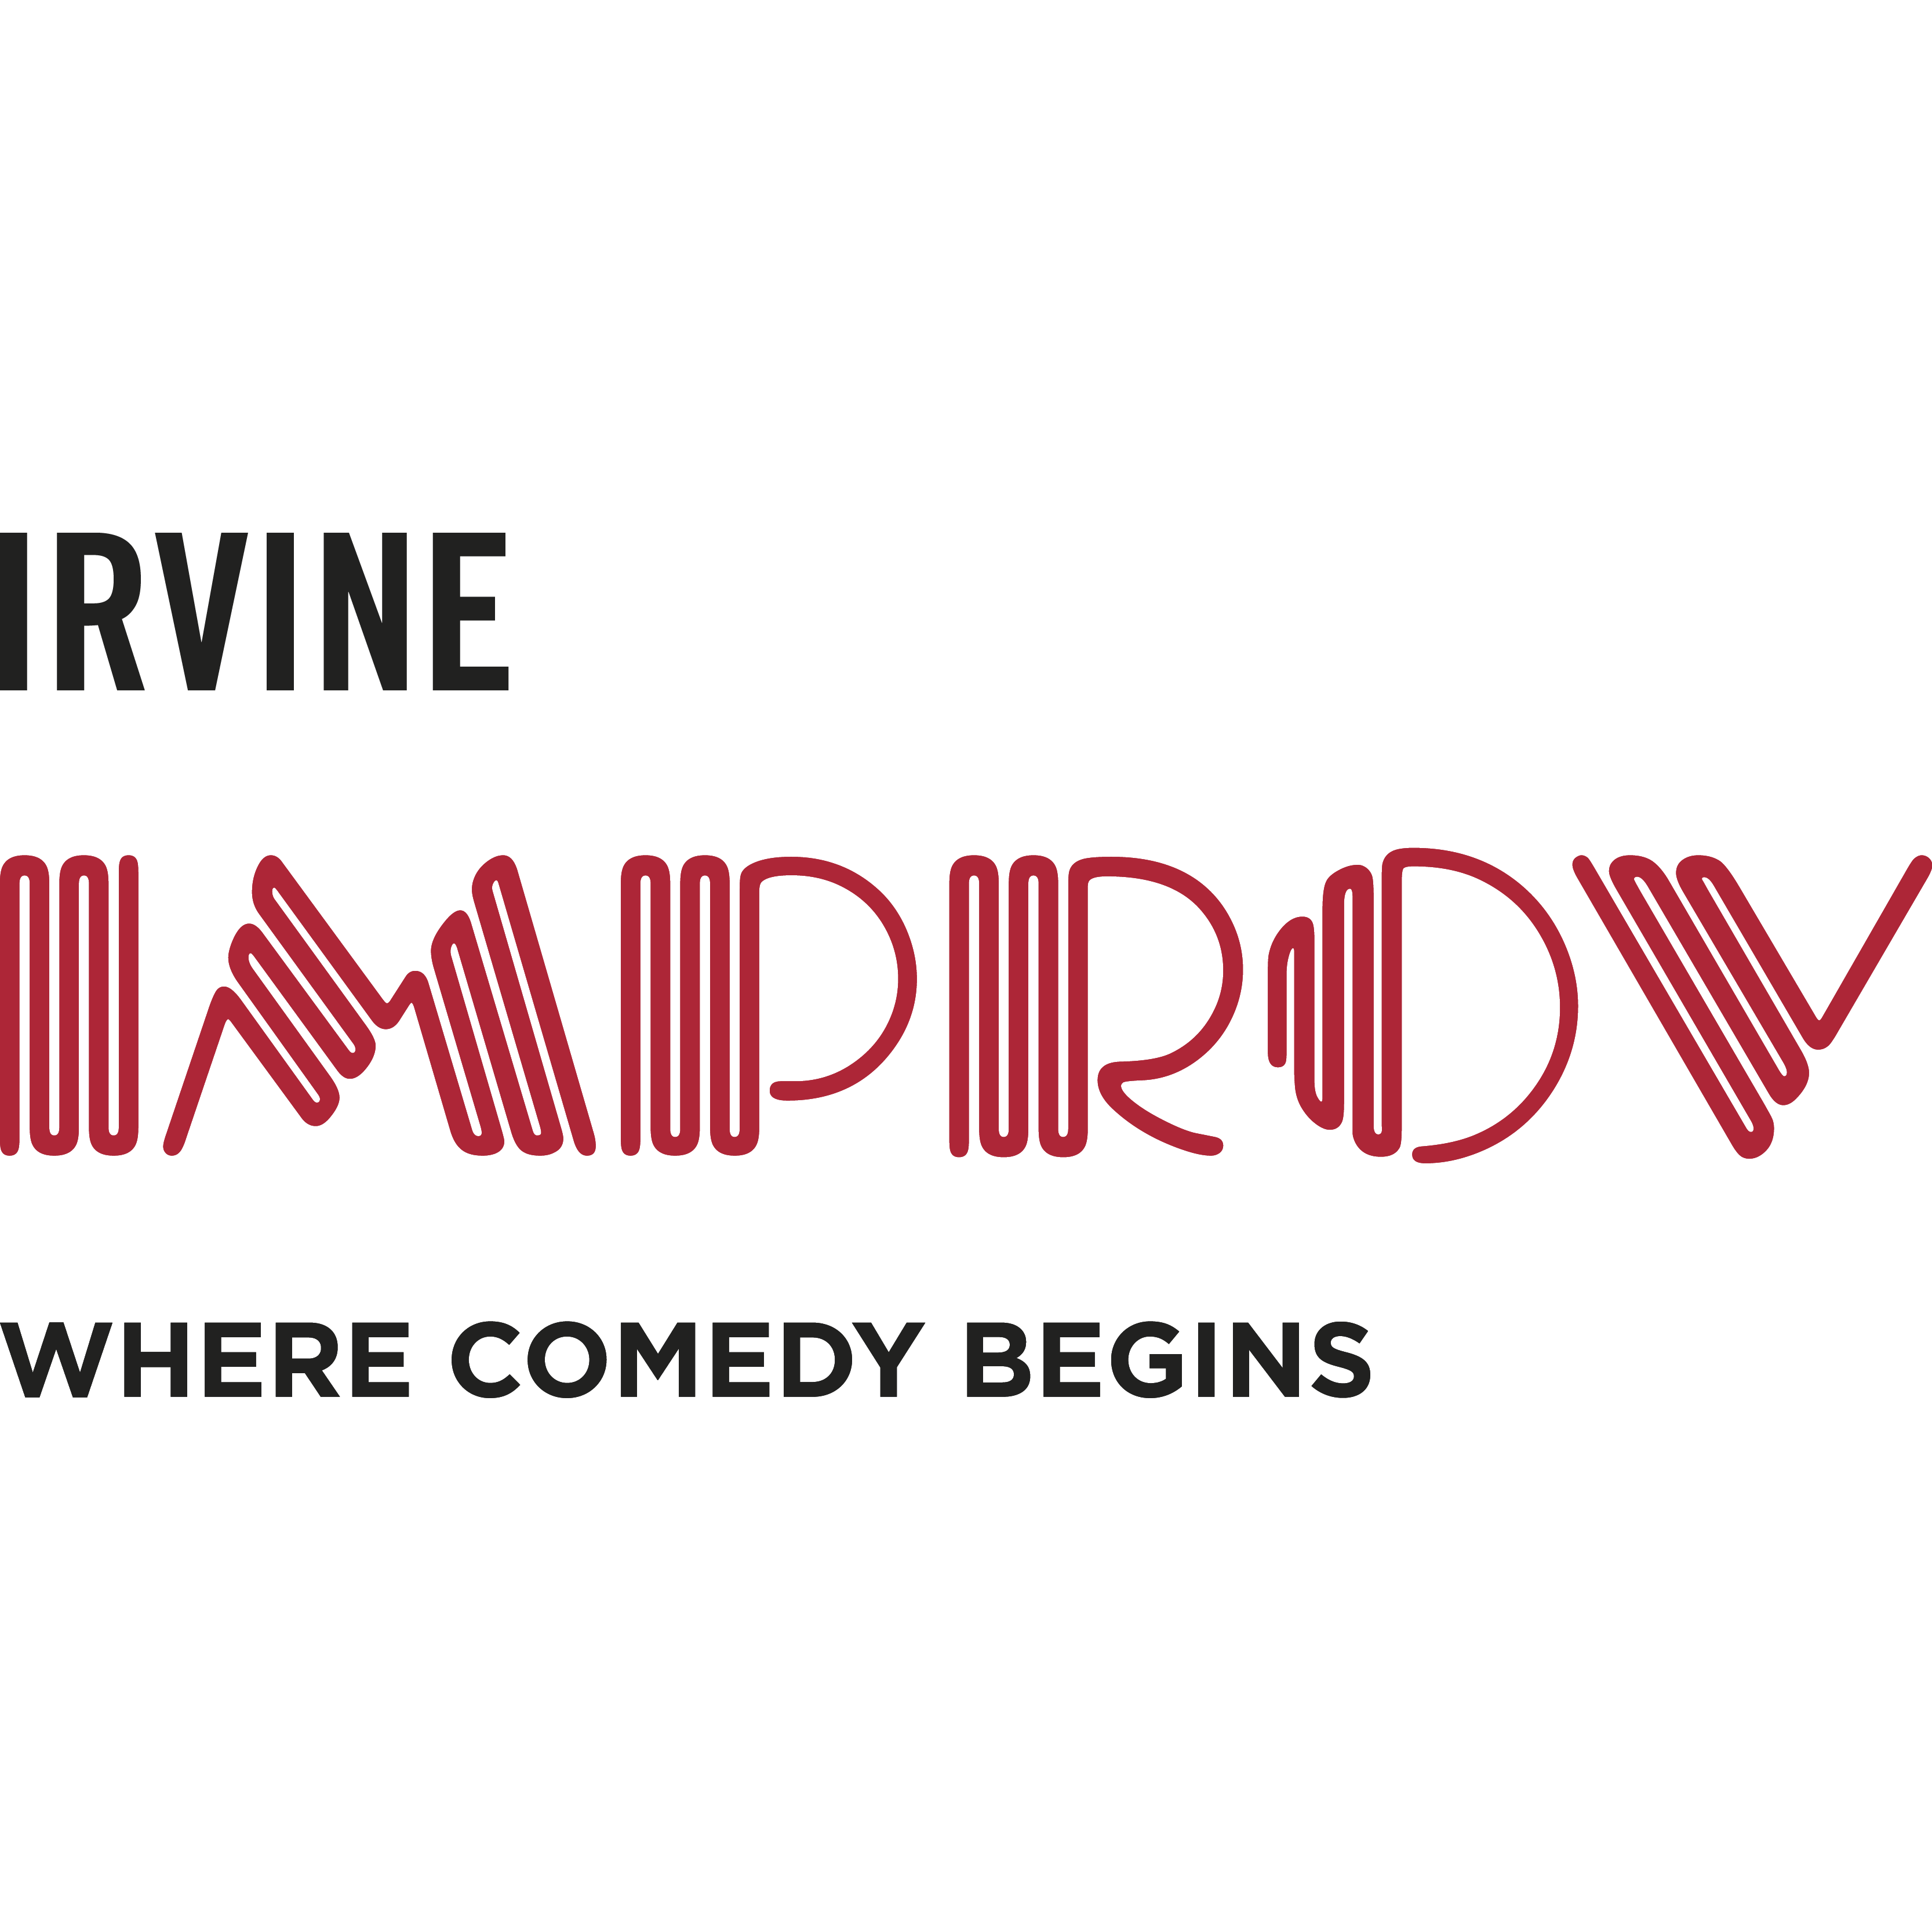 irvine improv tonight with gene pompa free tickets. Details: Irvine Improv tonight with Gene Pompa free tickets. Show Coupon Code 33% success rate $ Off Coupon Code. 4 free ian bagg tickets TX using promo code. Ends 02/23/ Show Coupon Code 15% success rate. $ Deal. get your ticket to see ali wong and pay only $ for processing.